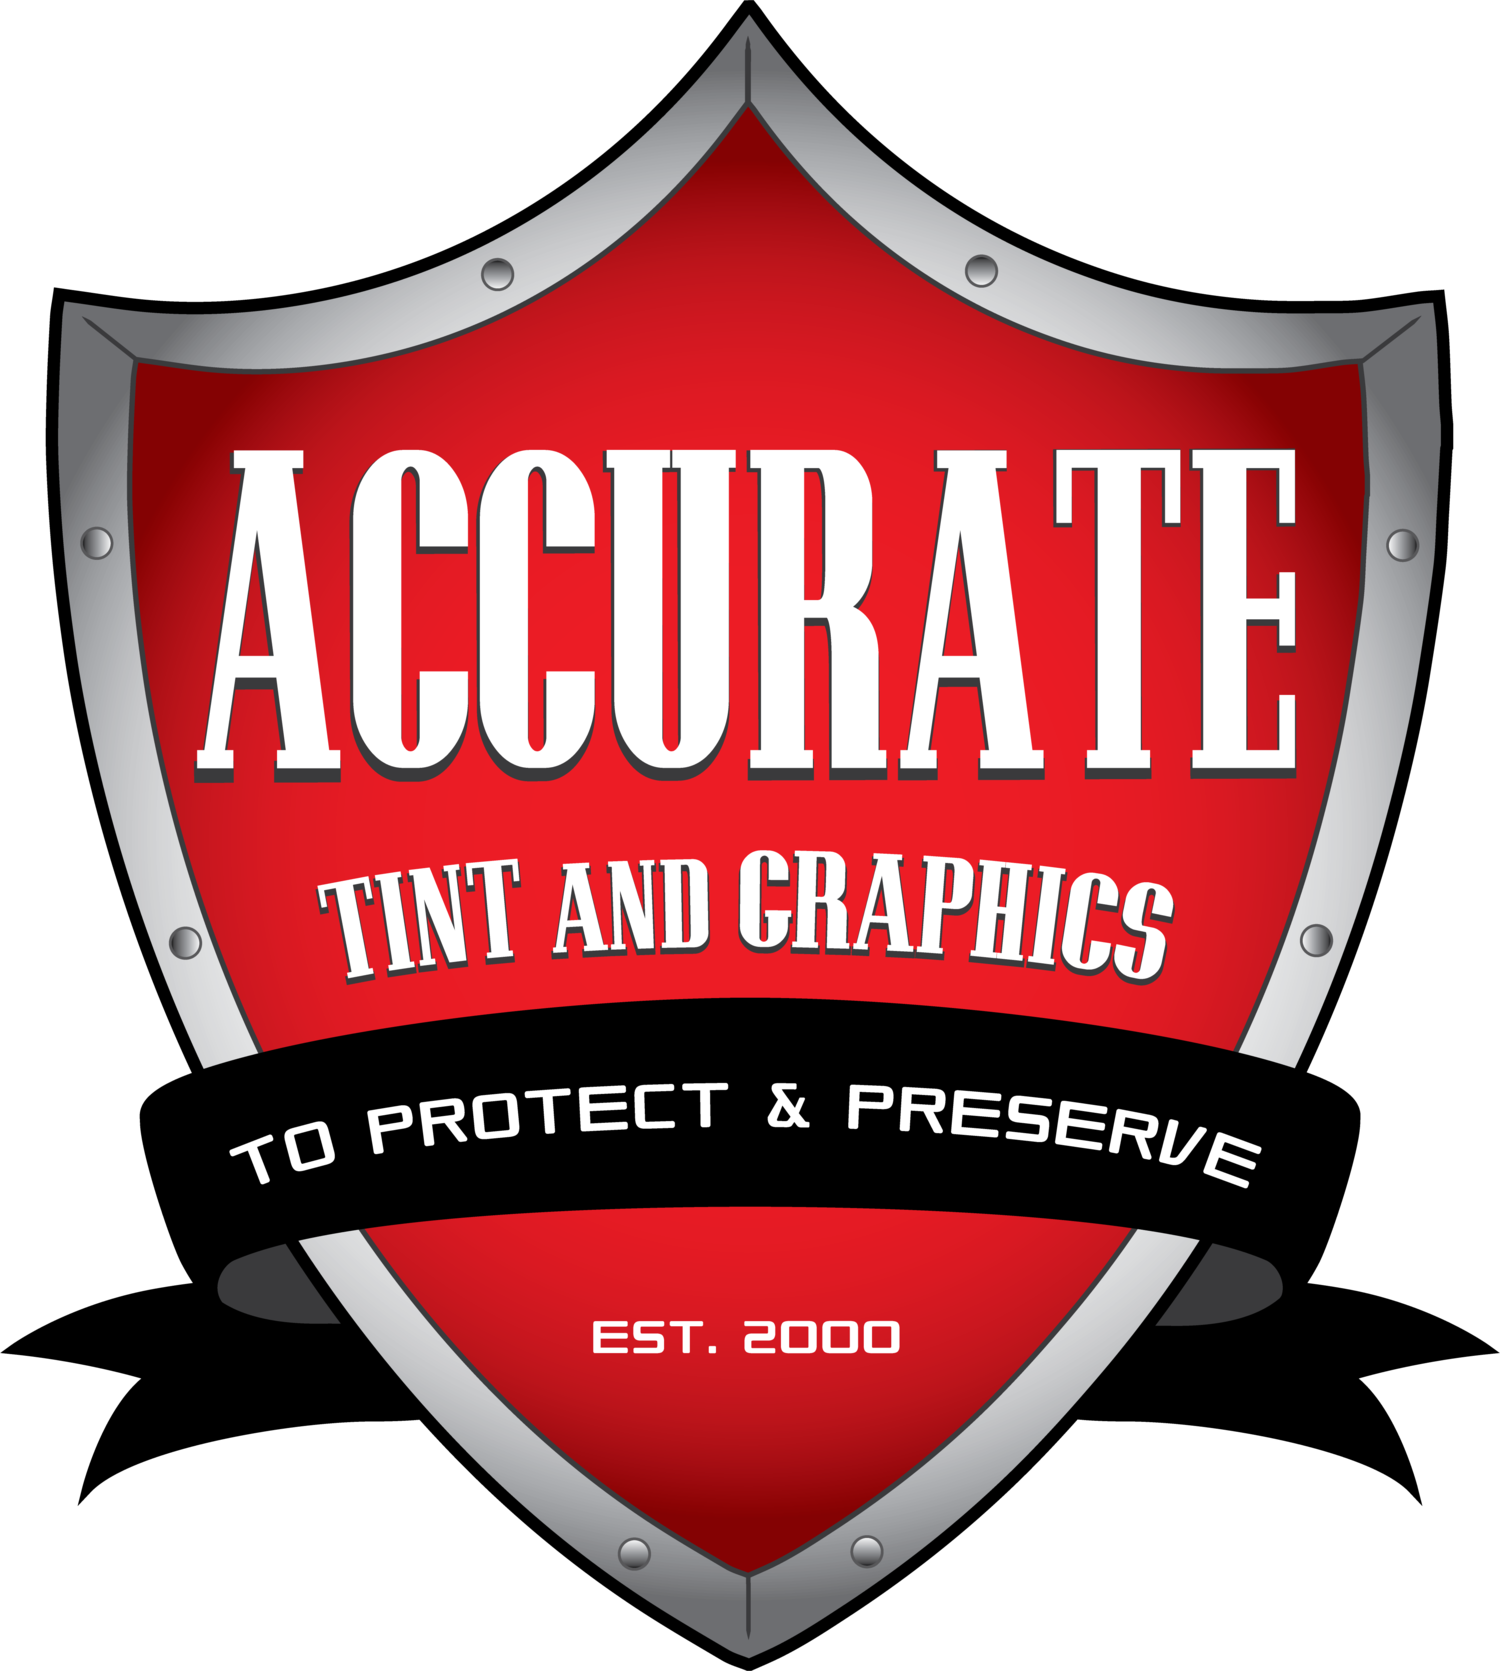 Accurate Tint and Graphics